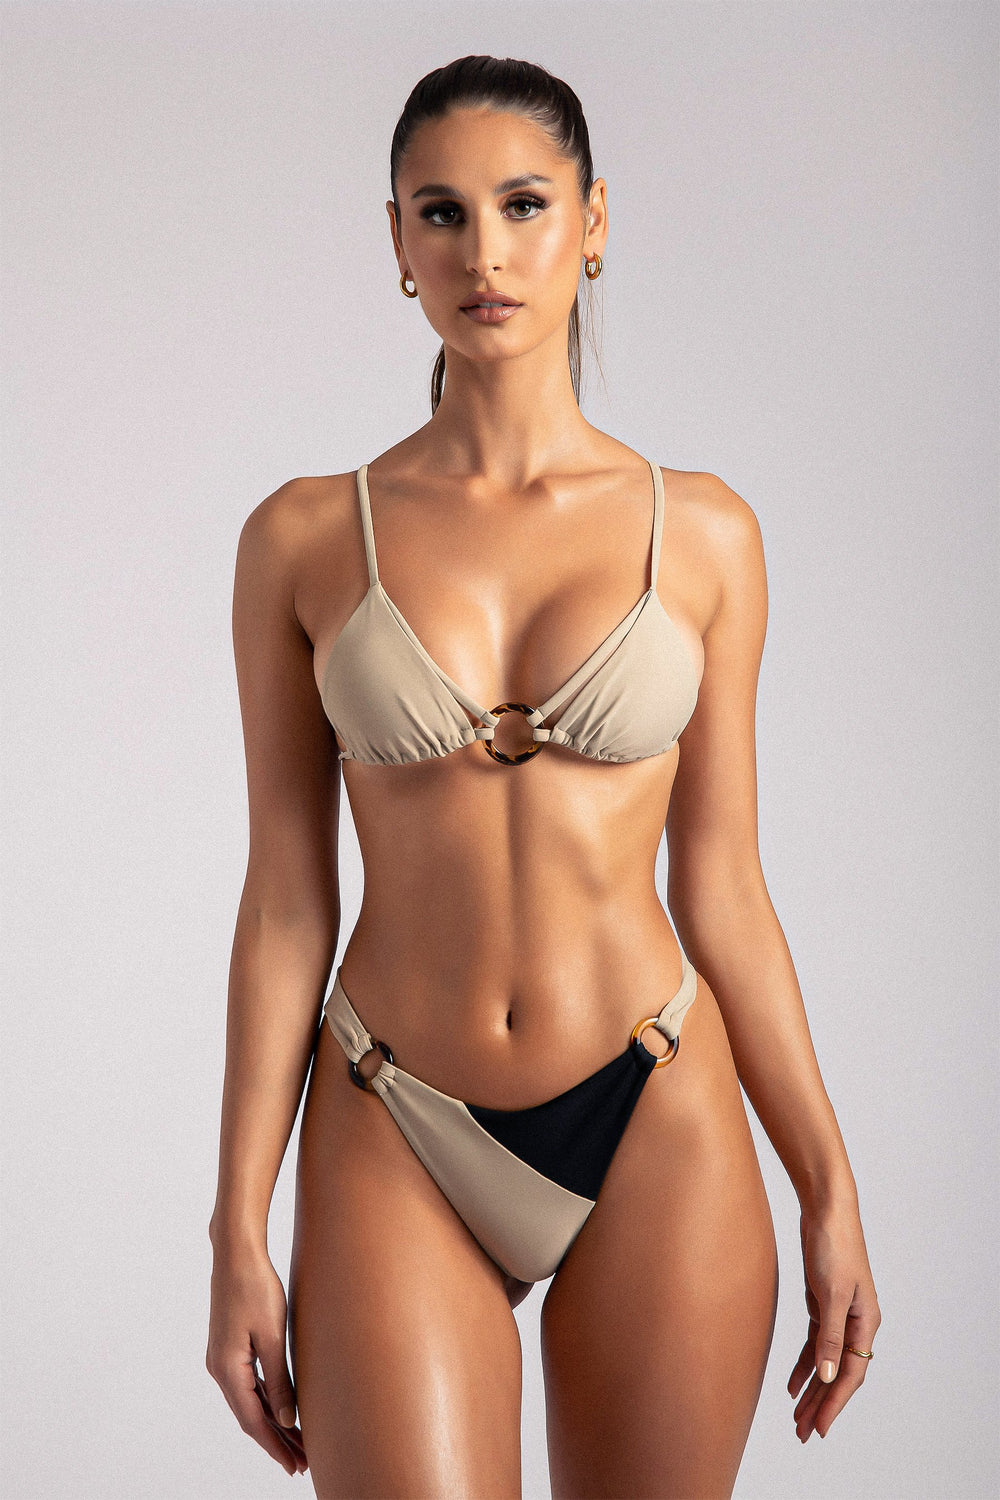 Clarissa O-Ring Triangle Bikini Top - Tan